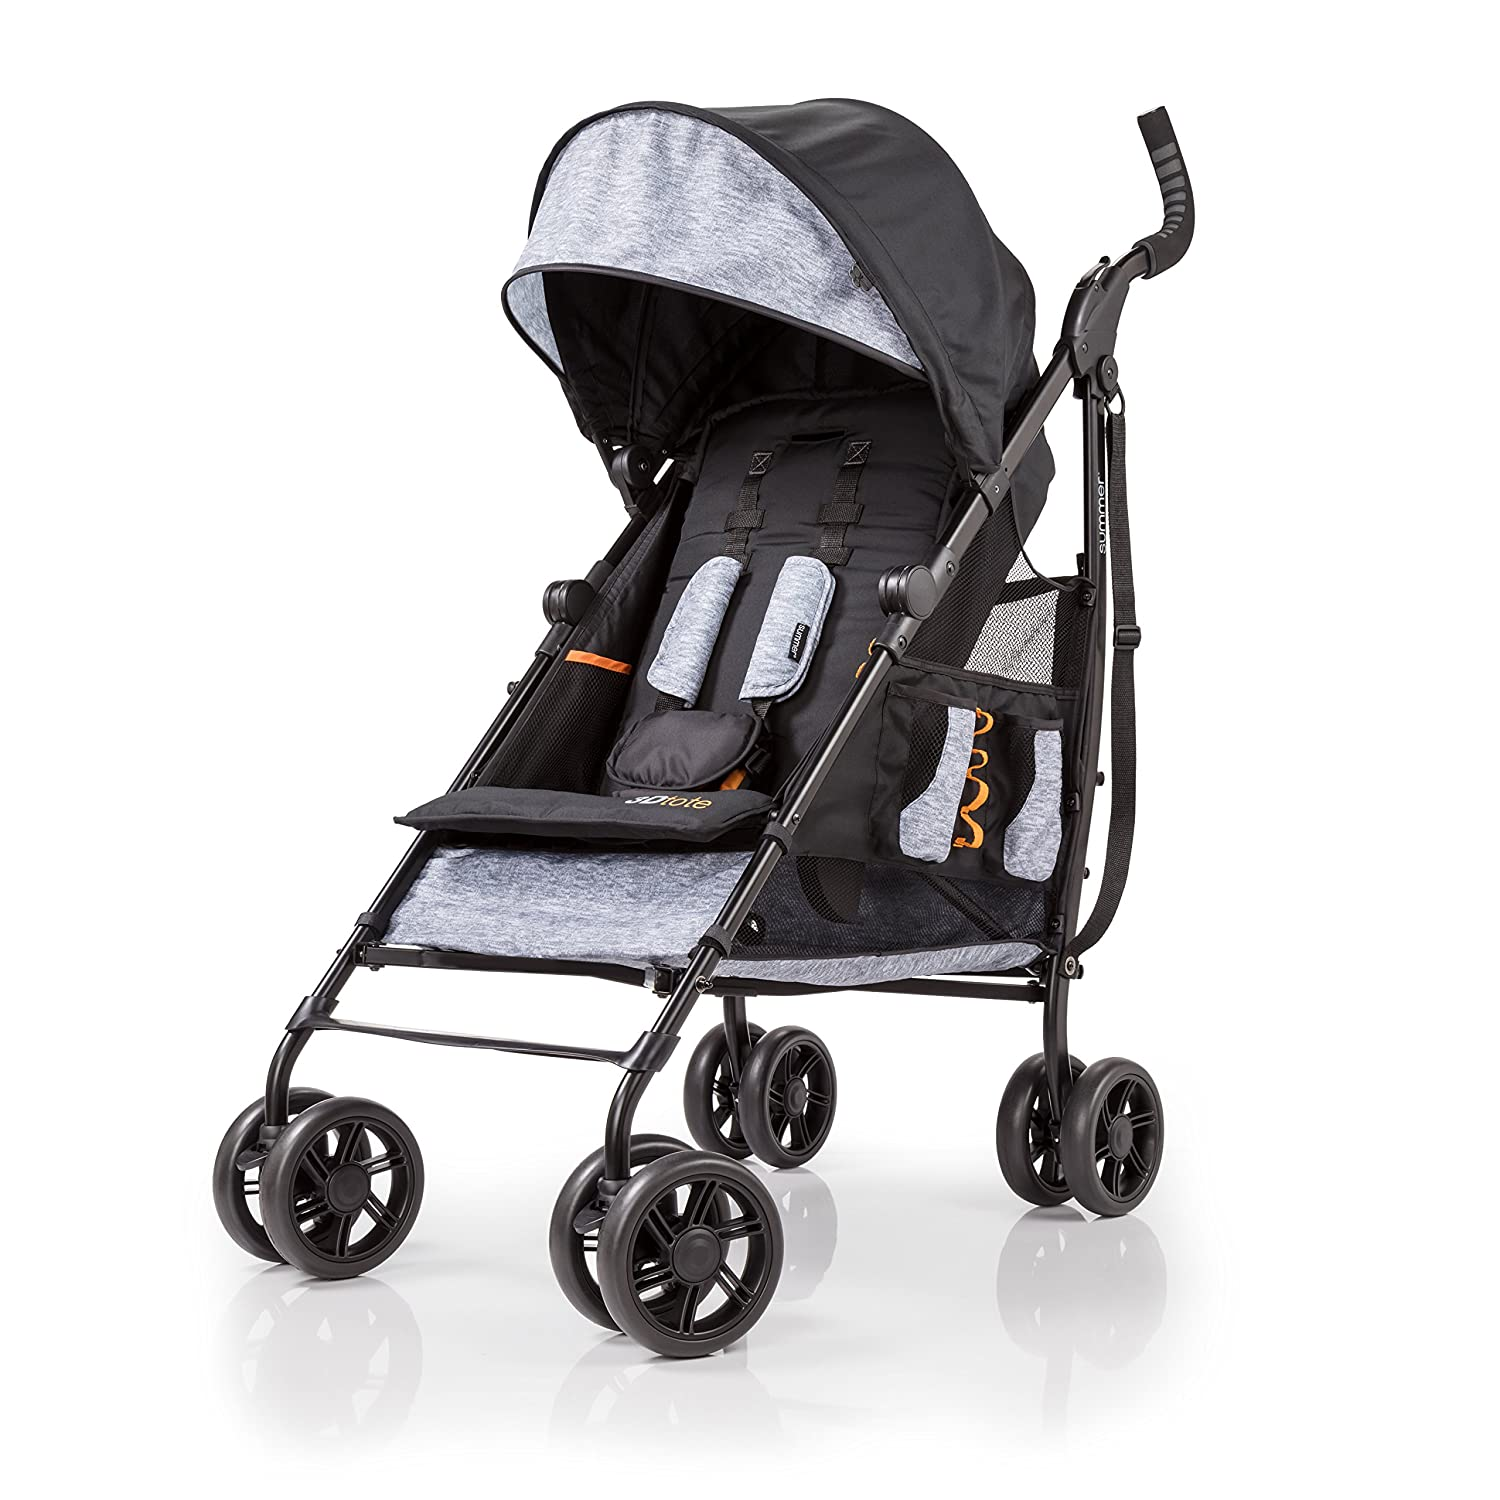 91JBja5bswL. SL1500 15 Best Umbrella Strollers for 2021 [Picked by Parents]